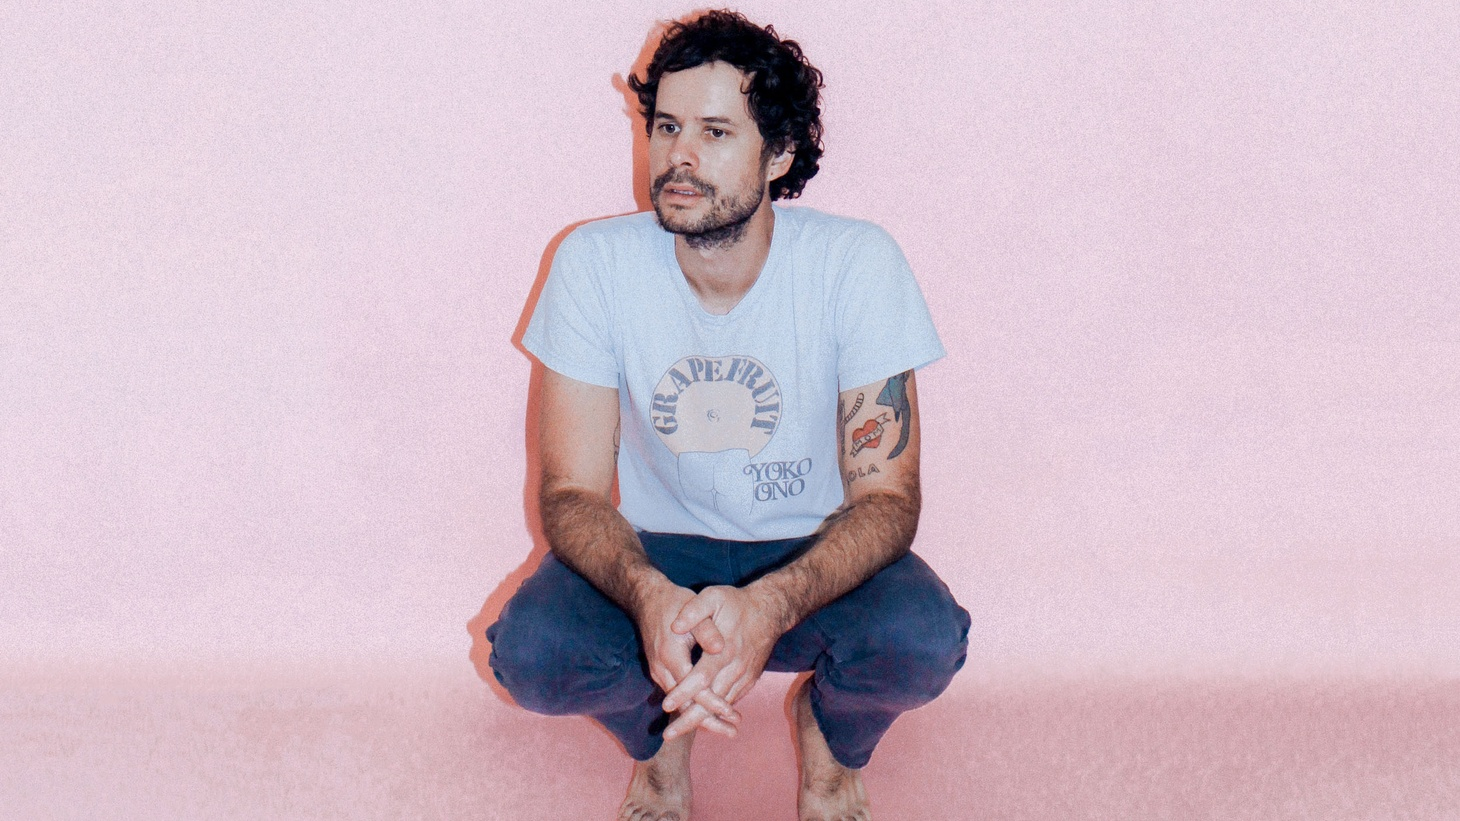 Eight years since the dissolution of his previous band, The Format, Sam Means has struck out on his own and crafted one of the first great albums of 2016 with 10 Songs.